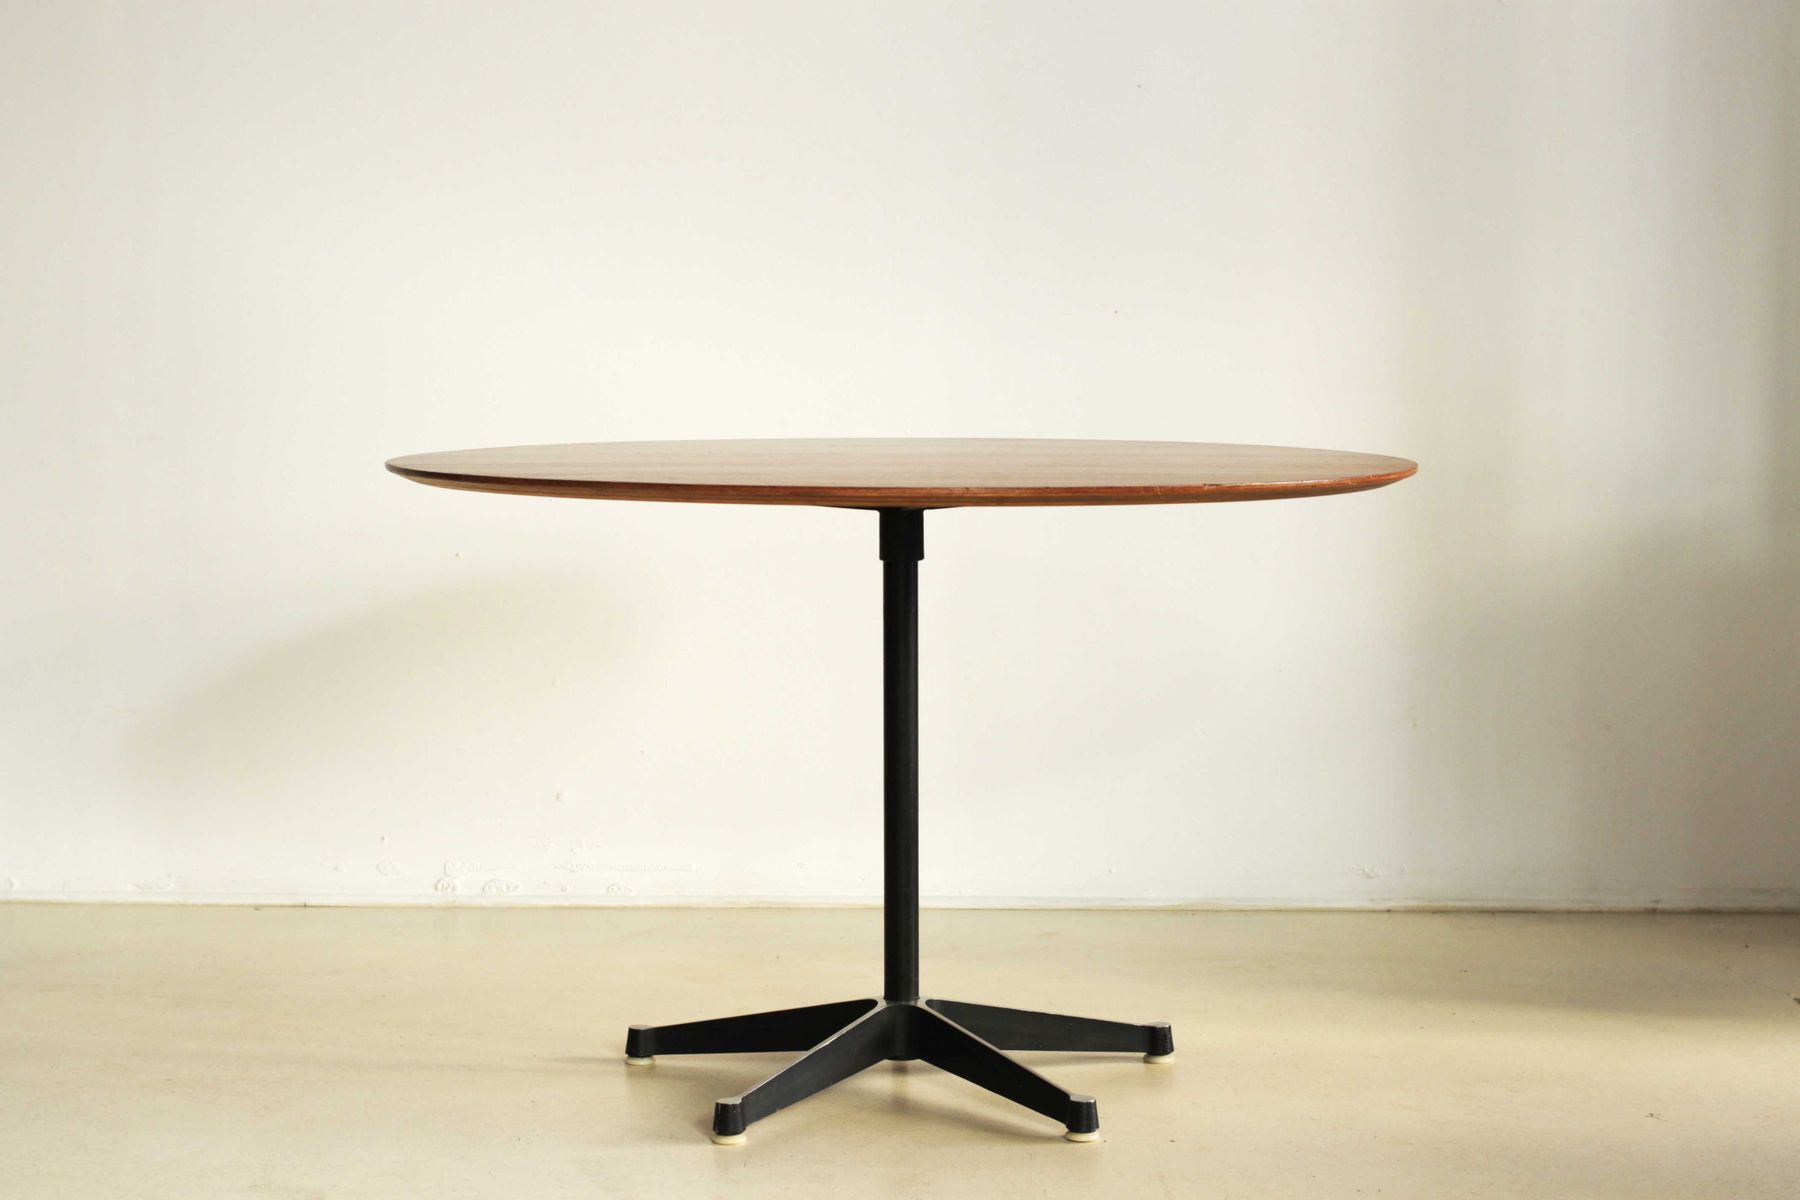 Contract table by charles ray eames for herman miller - Eames table herman miller ...